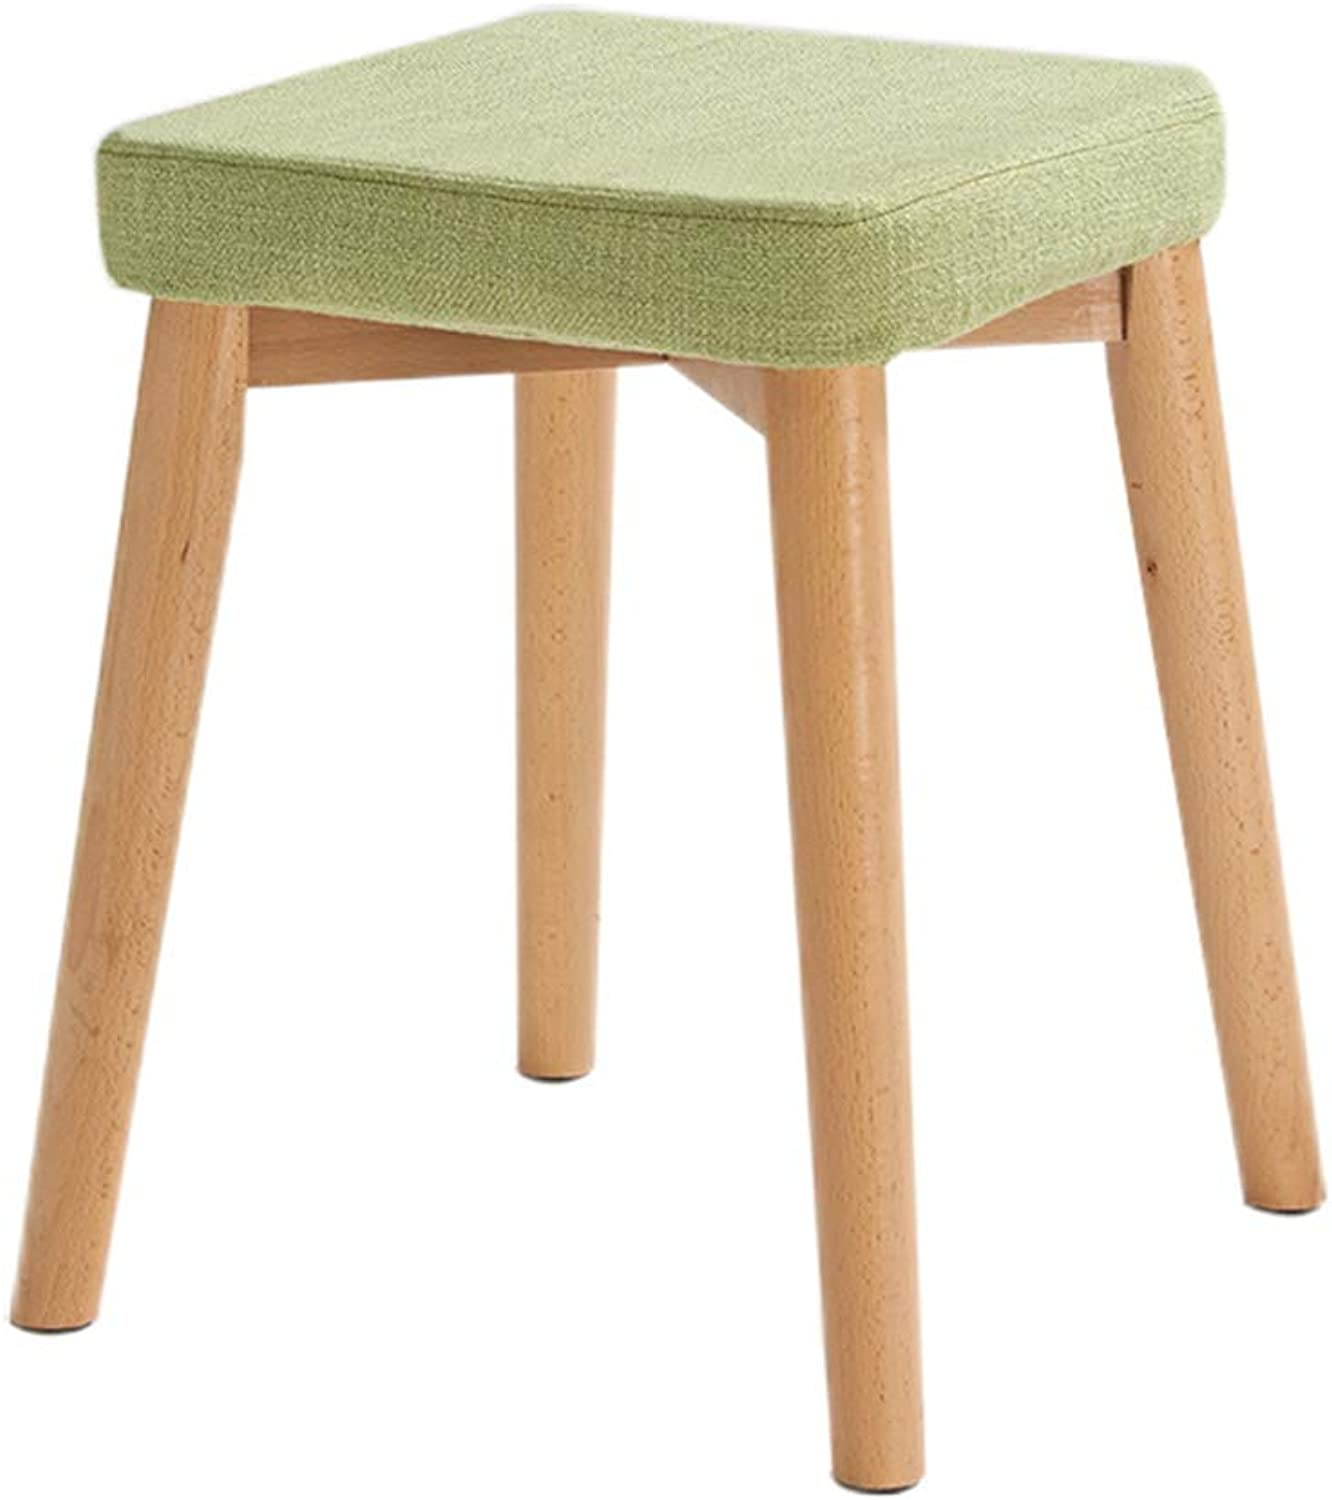 LYXPUZI Solid Wood Dining Stool Fabric Stool Stool Living Room Stool Square Bench Dressing Stool (color   Green)